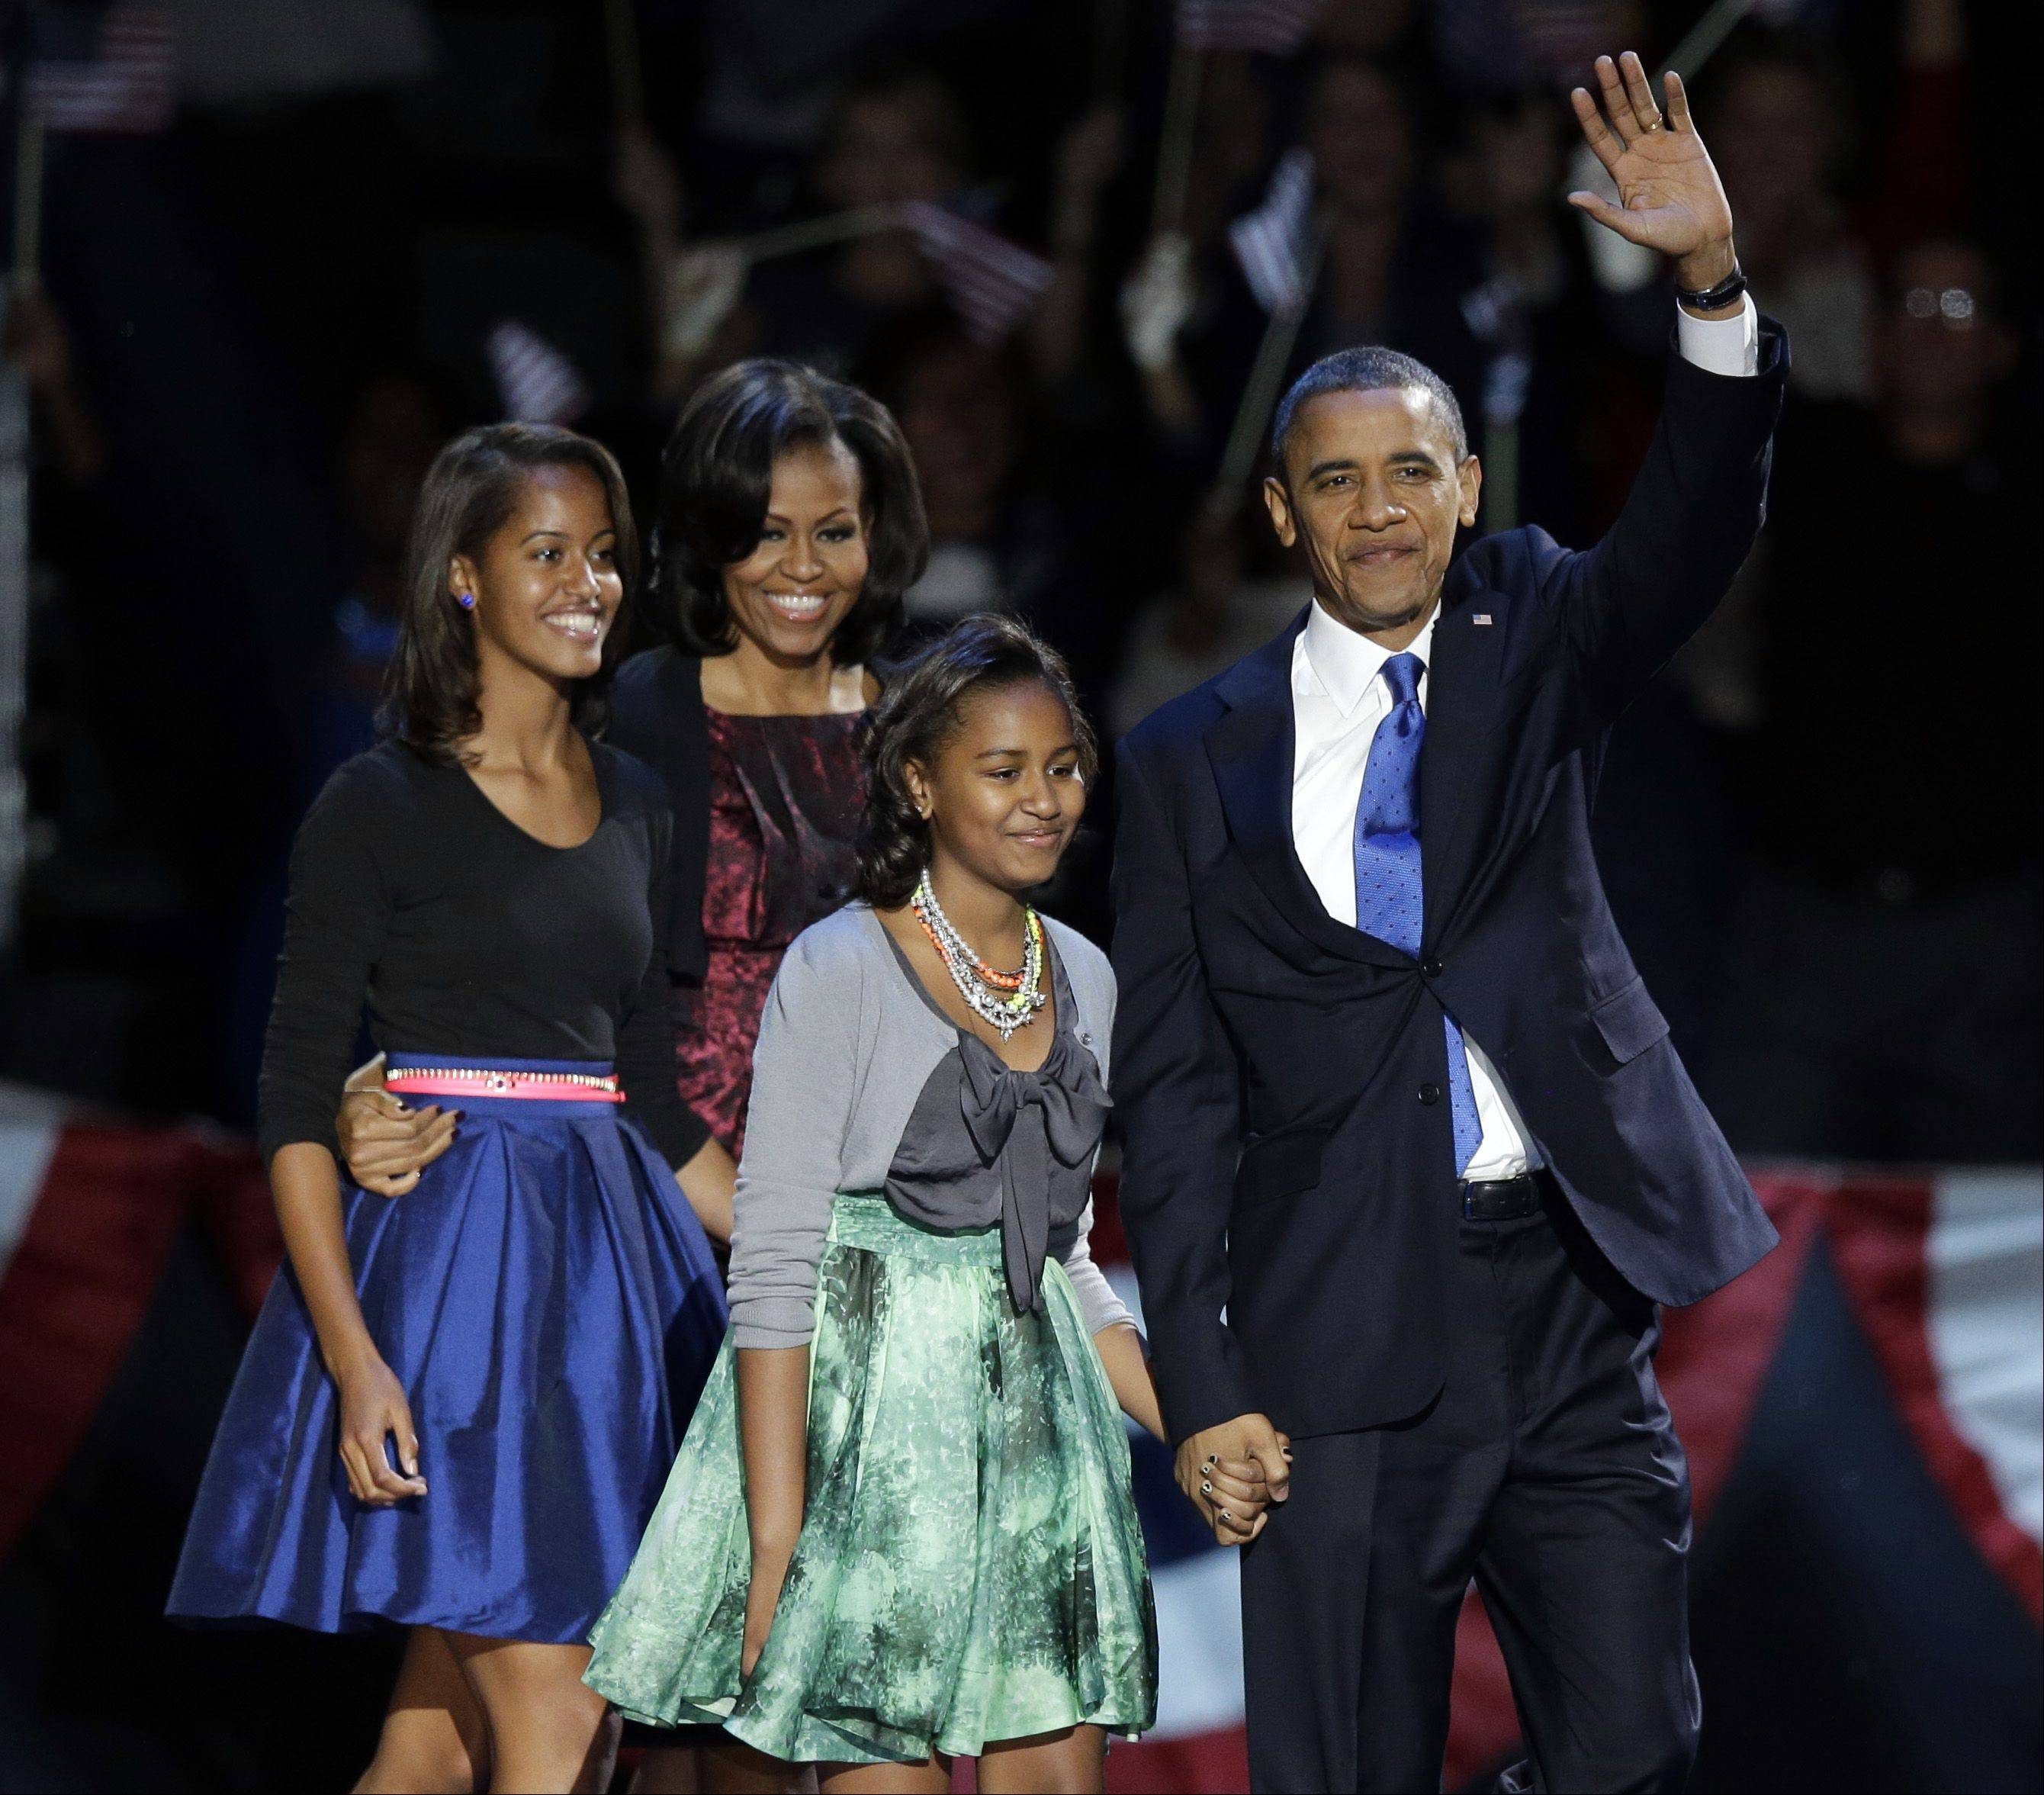 President Barack Obama waves as he walks on stage with first lady Michelle Obama and daughters Malia and Sasha at his election night party Wednesday, Nov. 7, 2012, in Chicago.